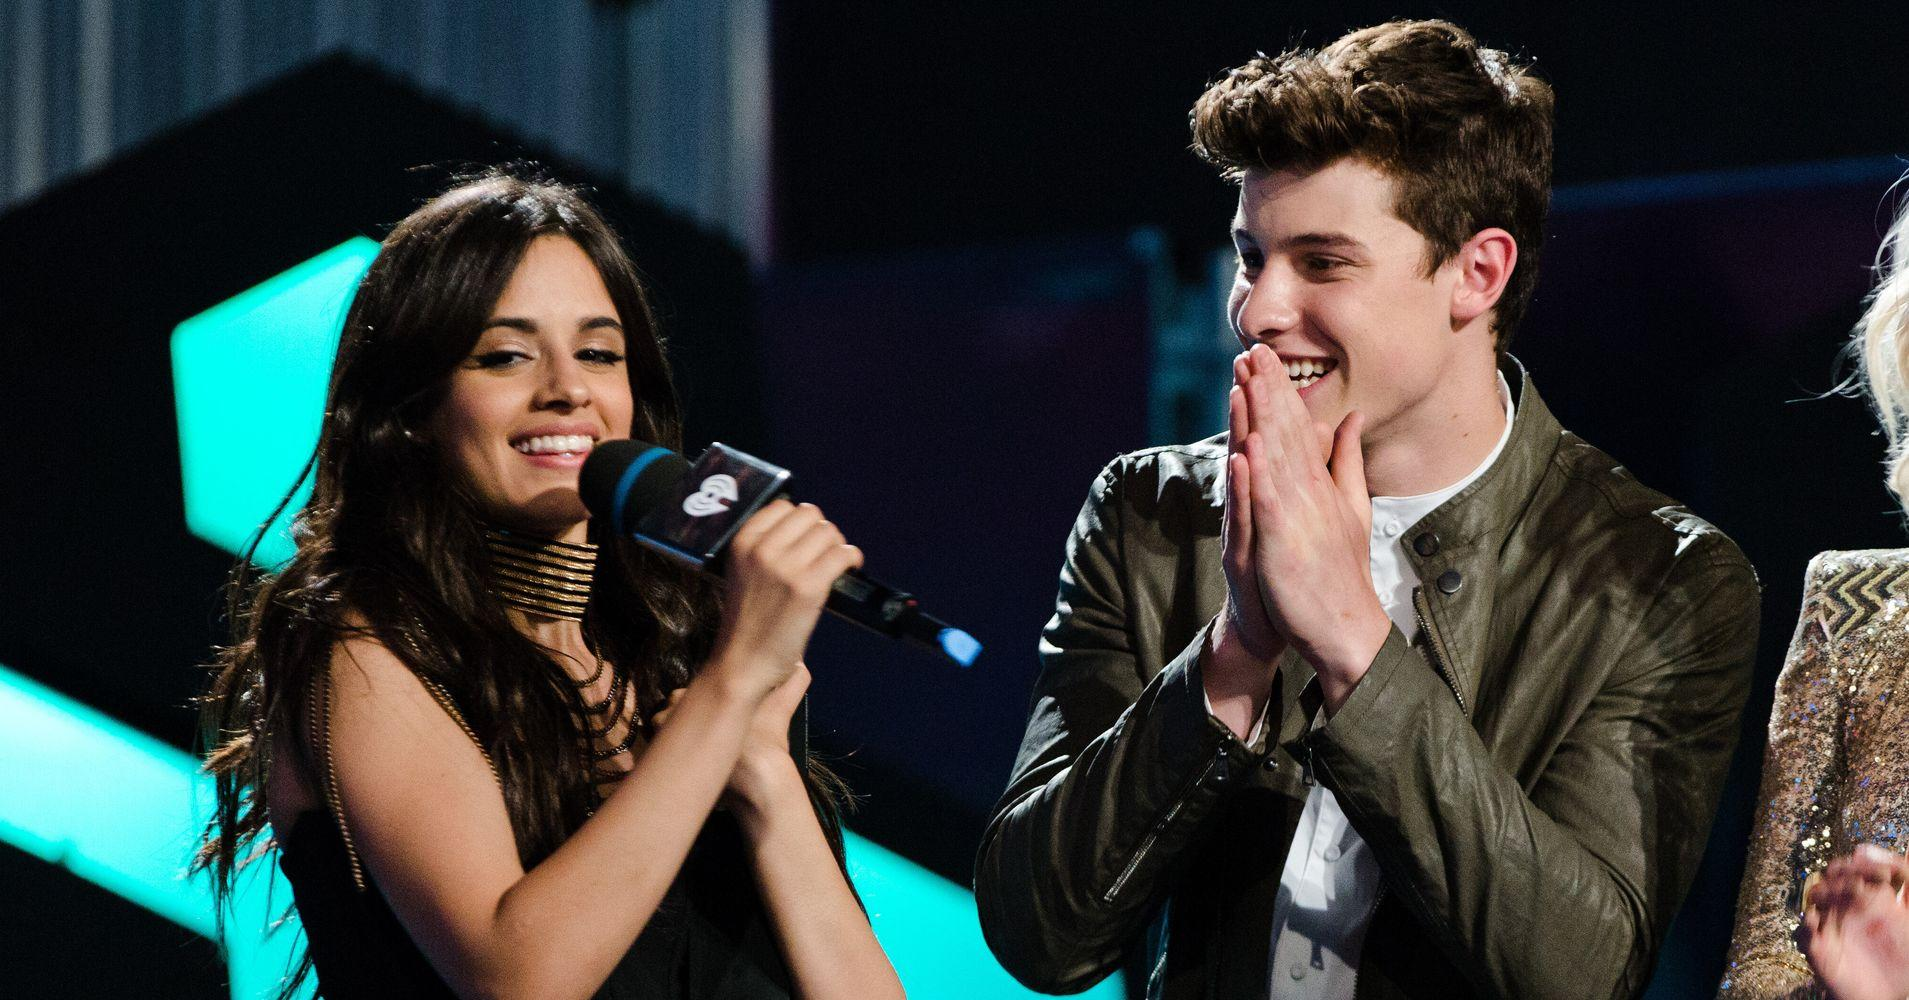 Camila Cabello Gushes Over Her 'Rare And Precious' Relationship With Shawn Mendes Amid Romance Rumors